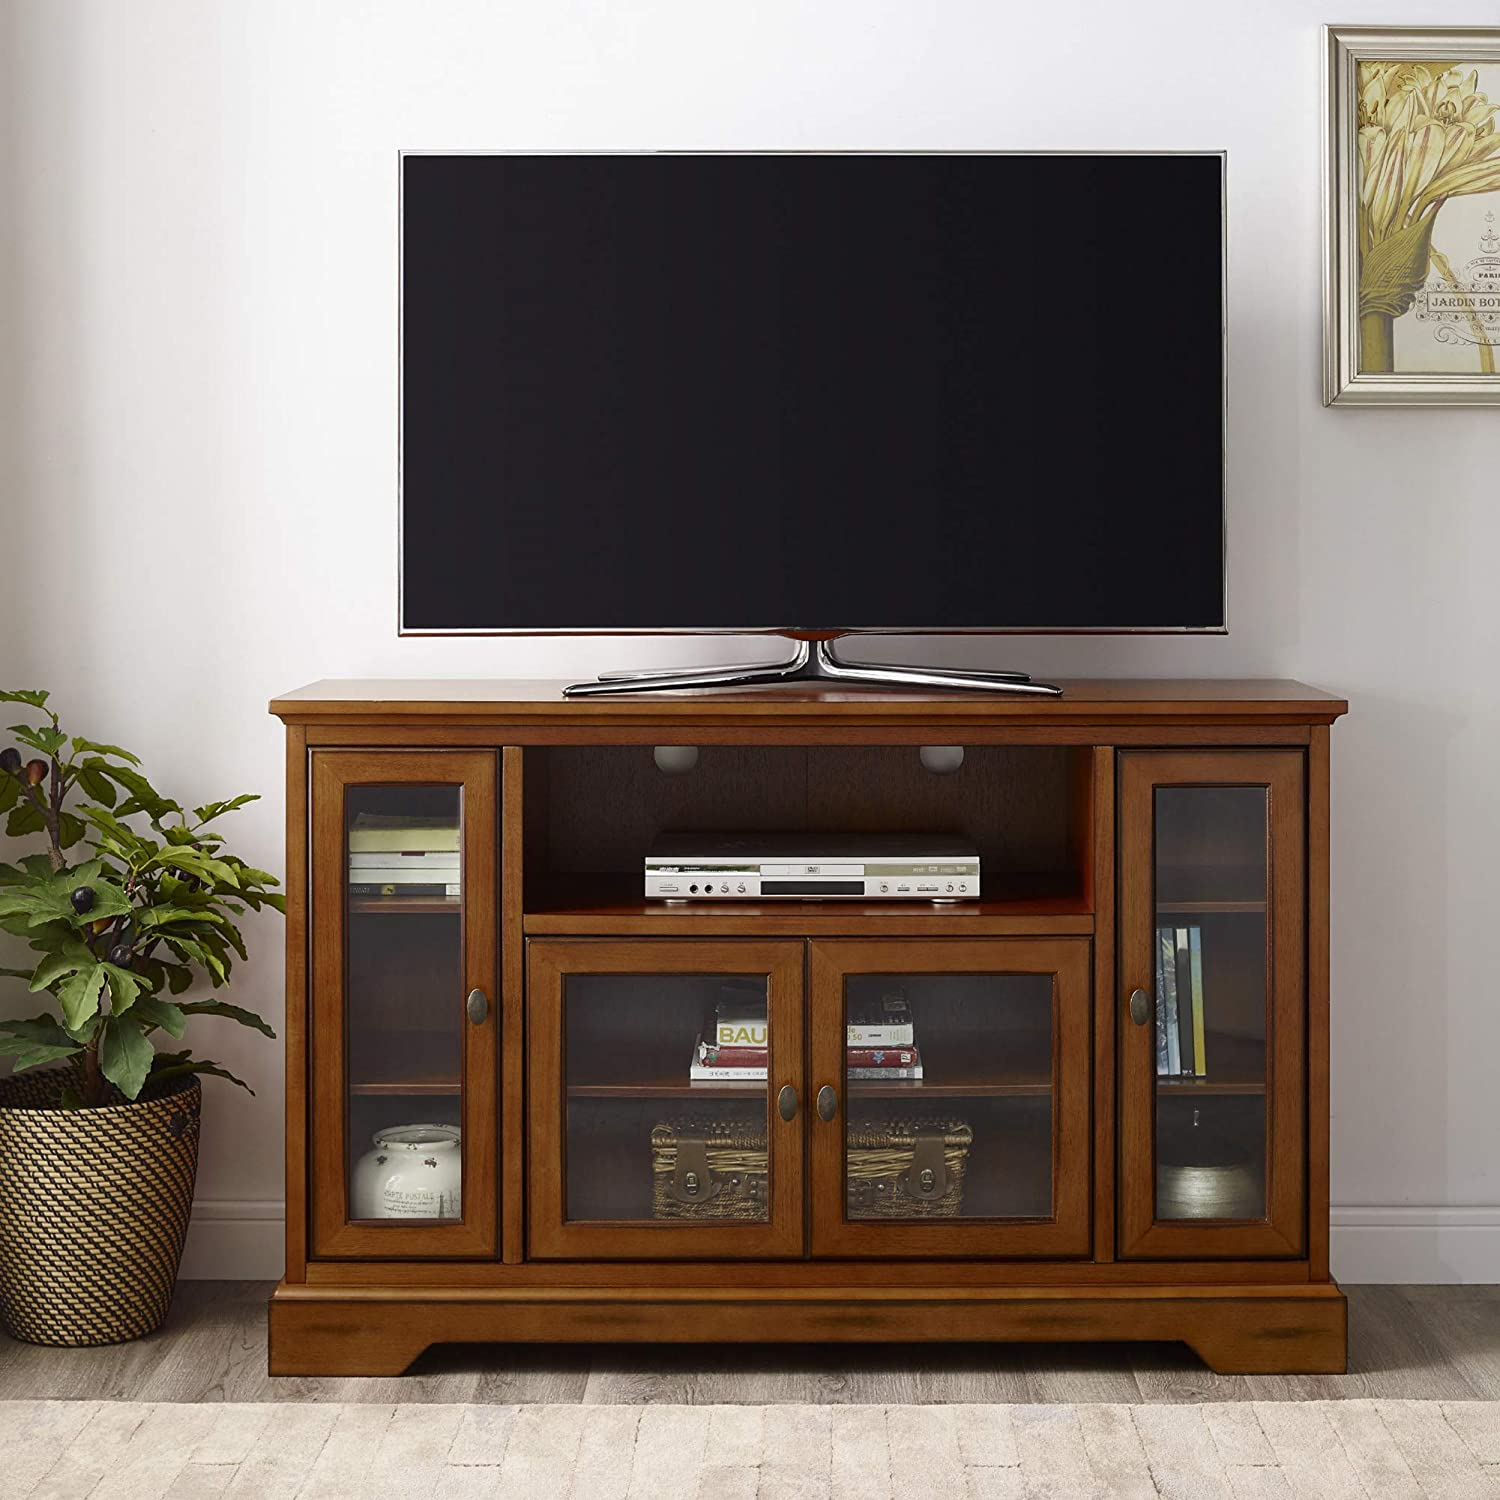 "WE Furniture Traditional Wood Stand for TV's up to 56"" Living Room Storage, 52 Inch"